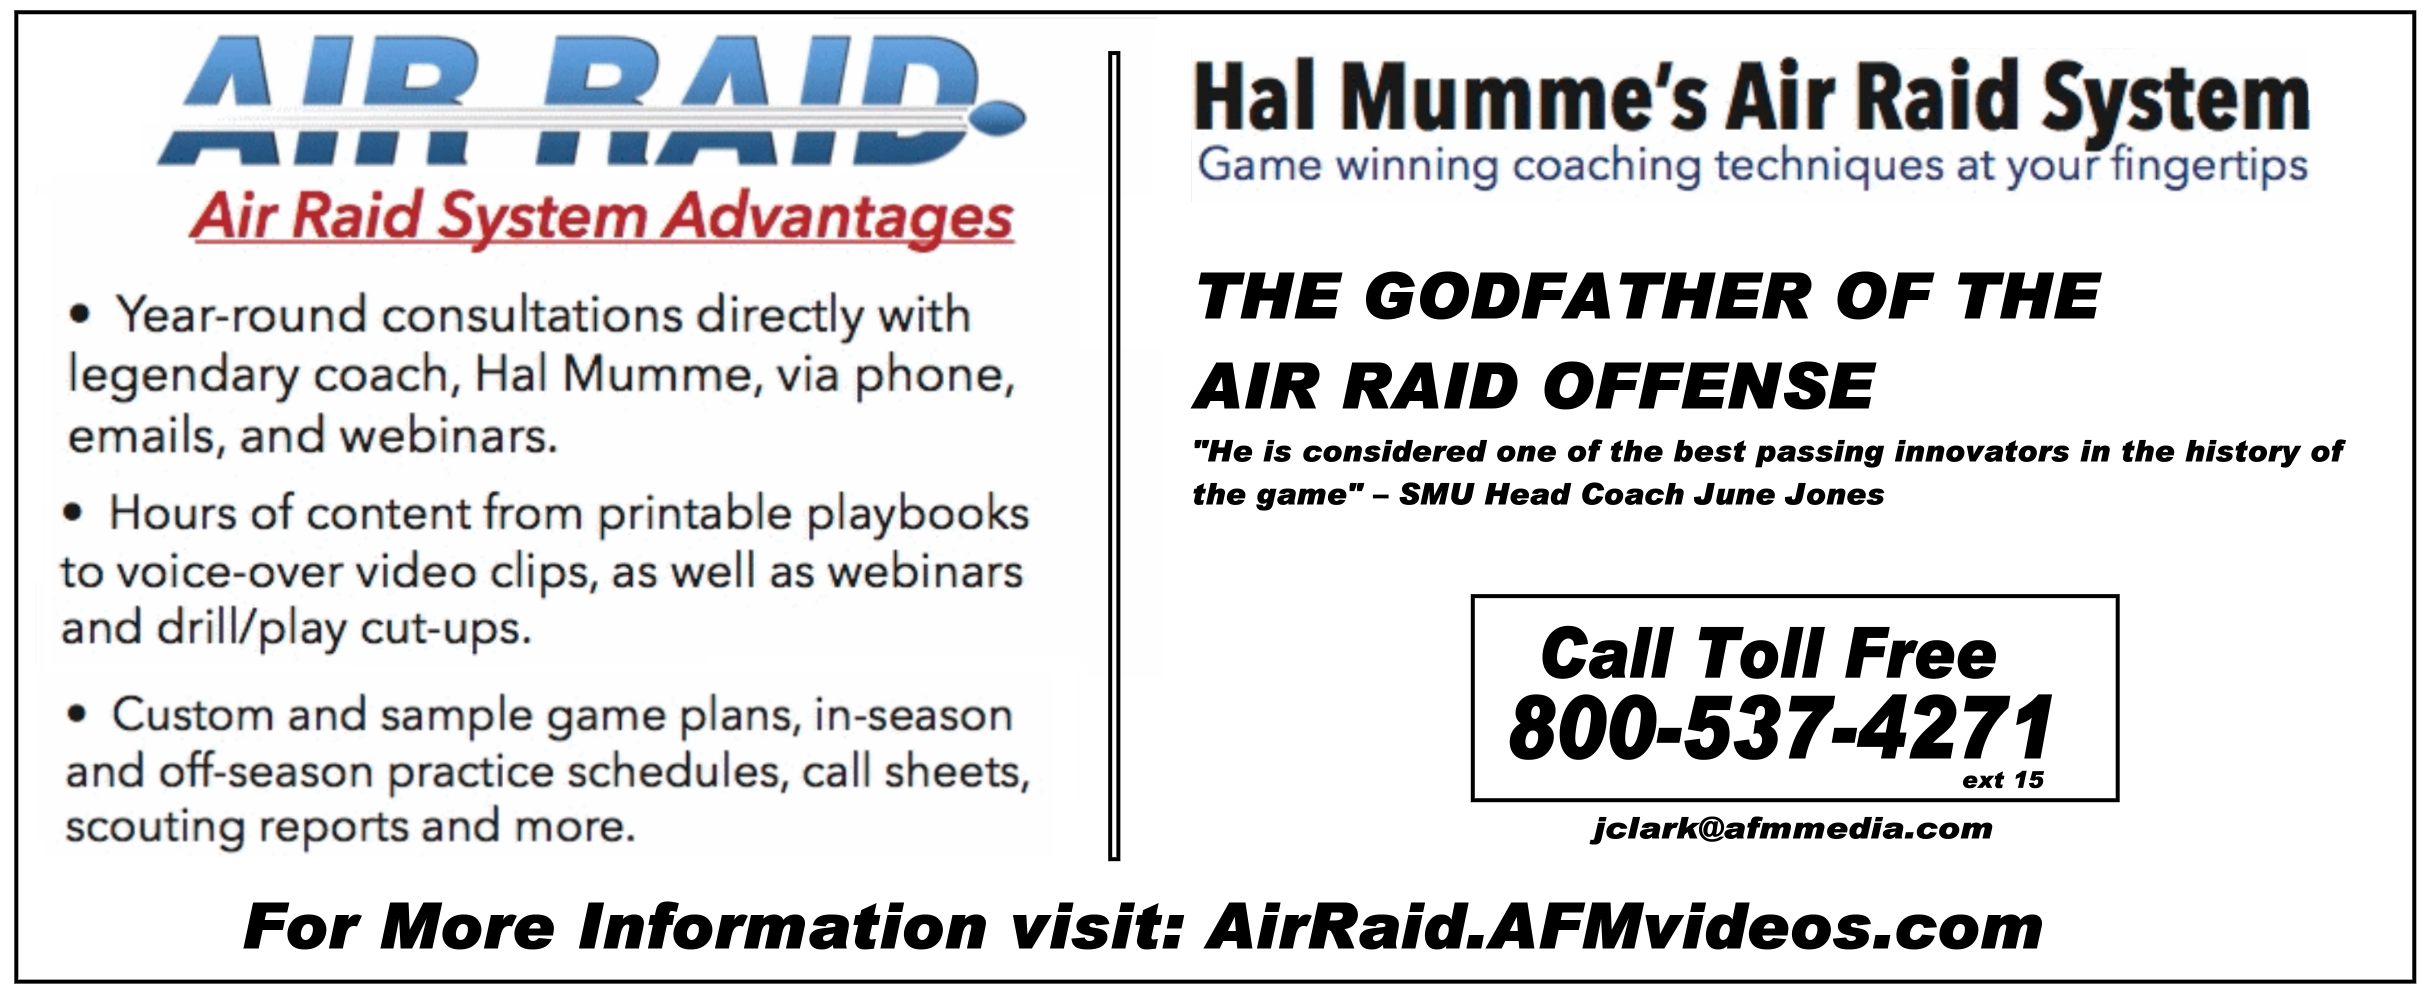 Air Raid Offense Information